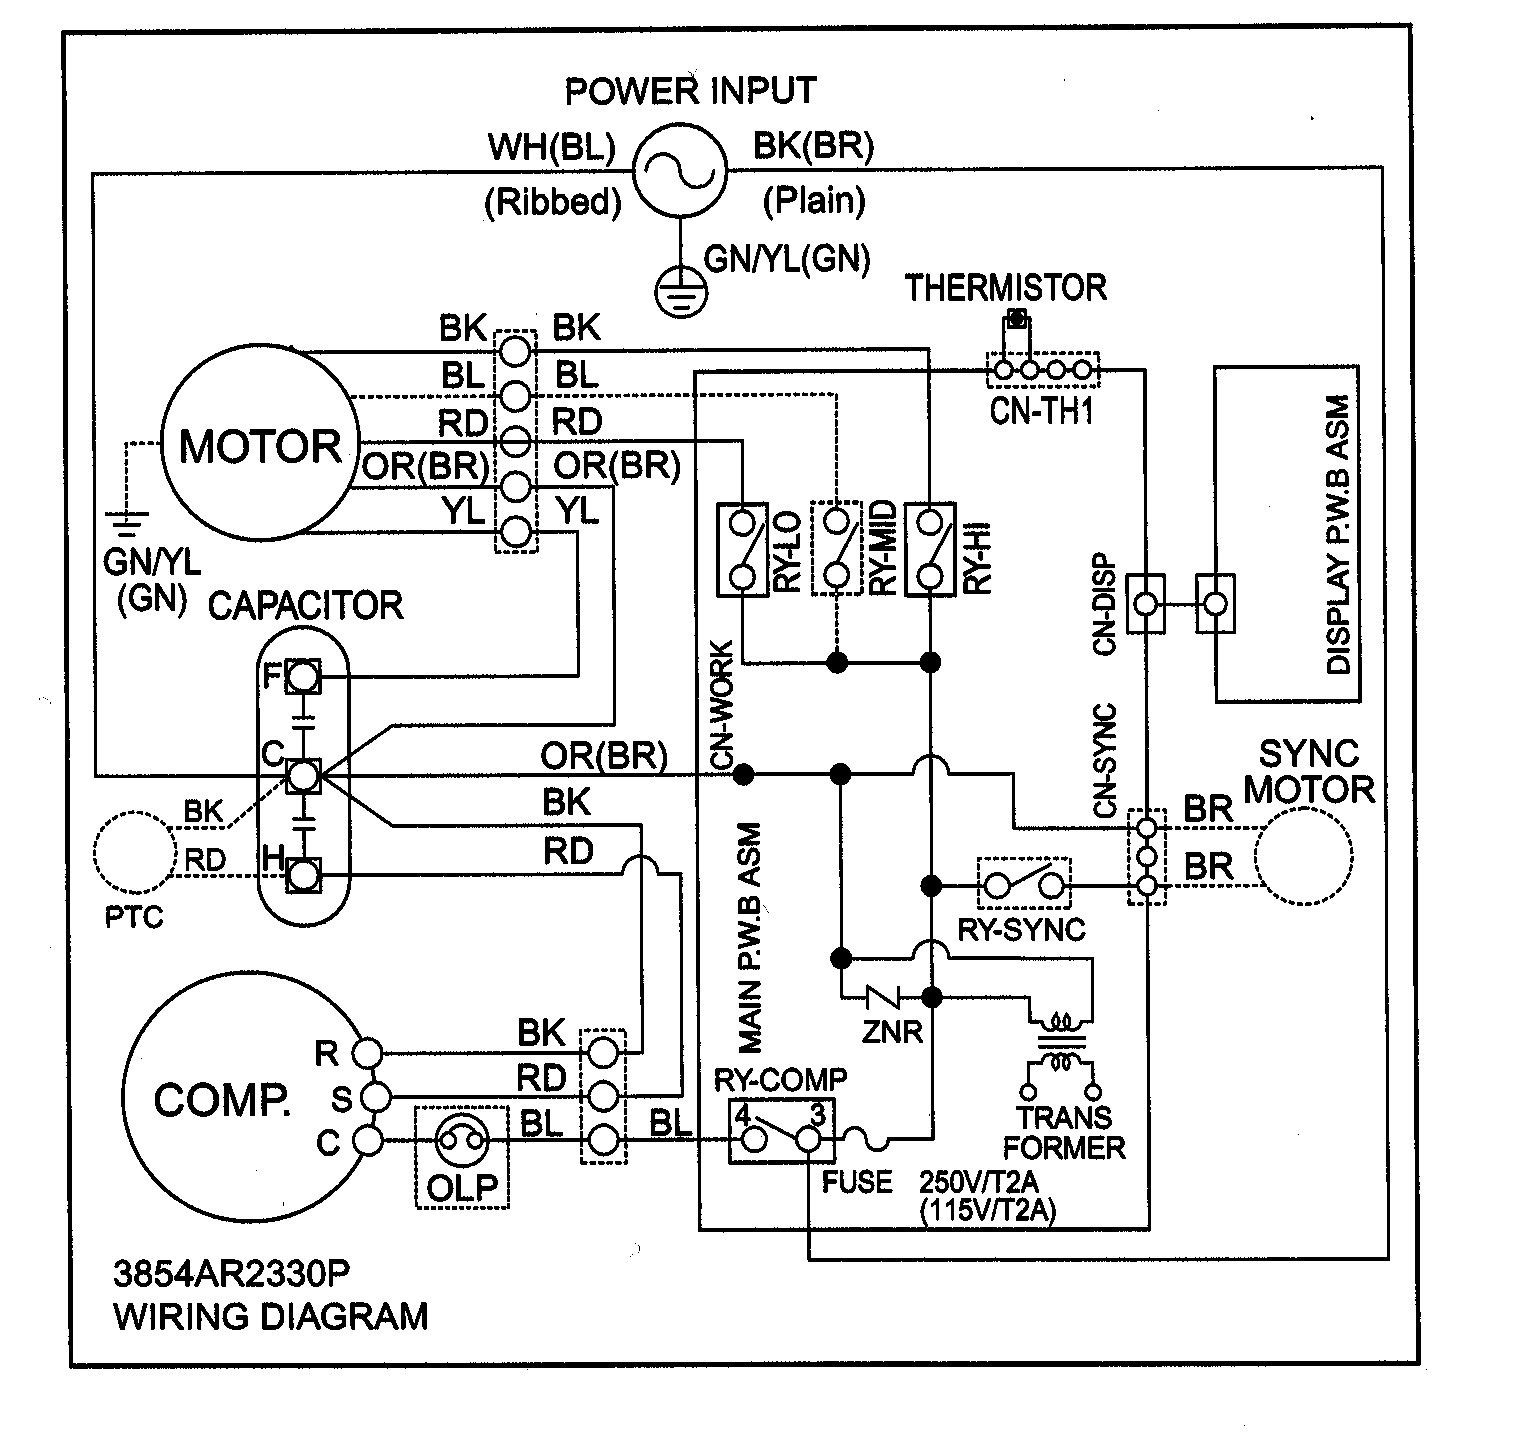 Unique Wiring Diagram Of Lg Window Ac Diagram Diagramtemplate Diagramsample Circuit Diagram Ac Wiring Diagram